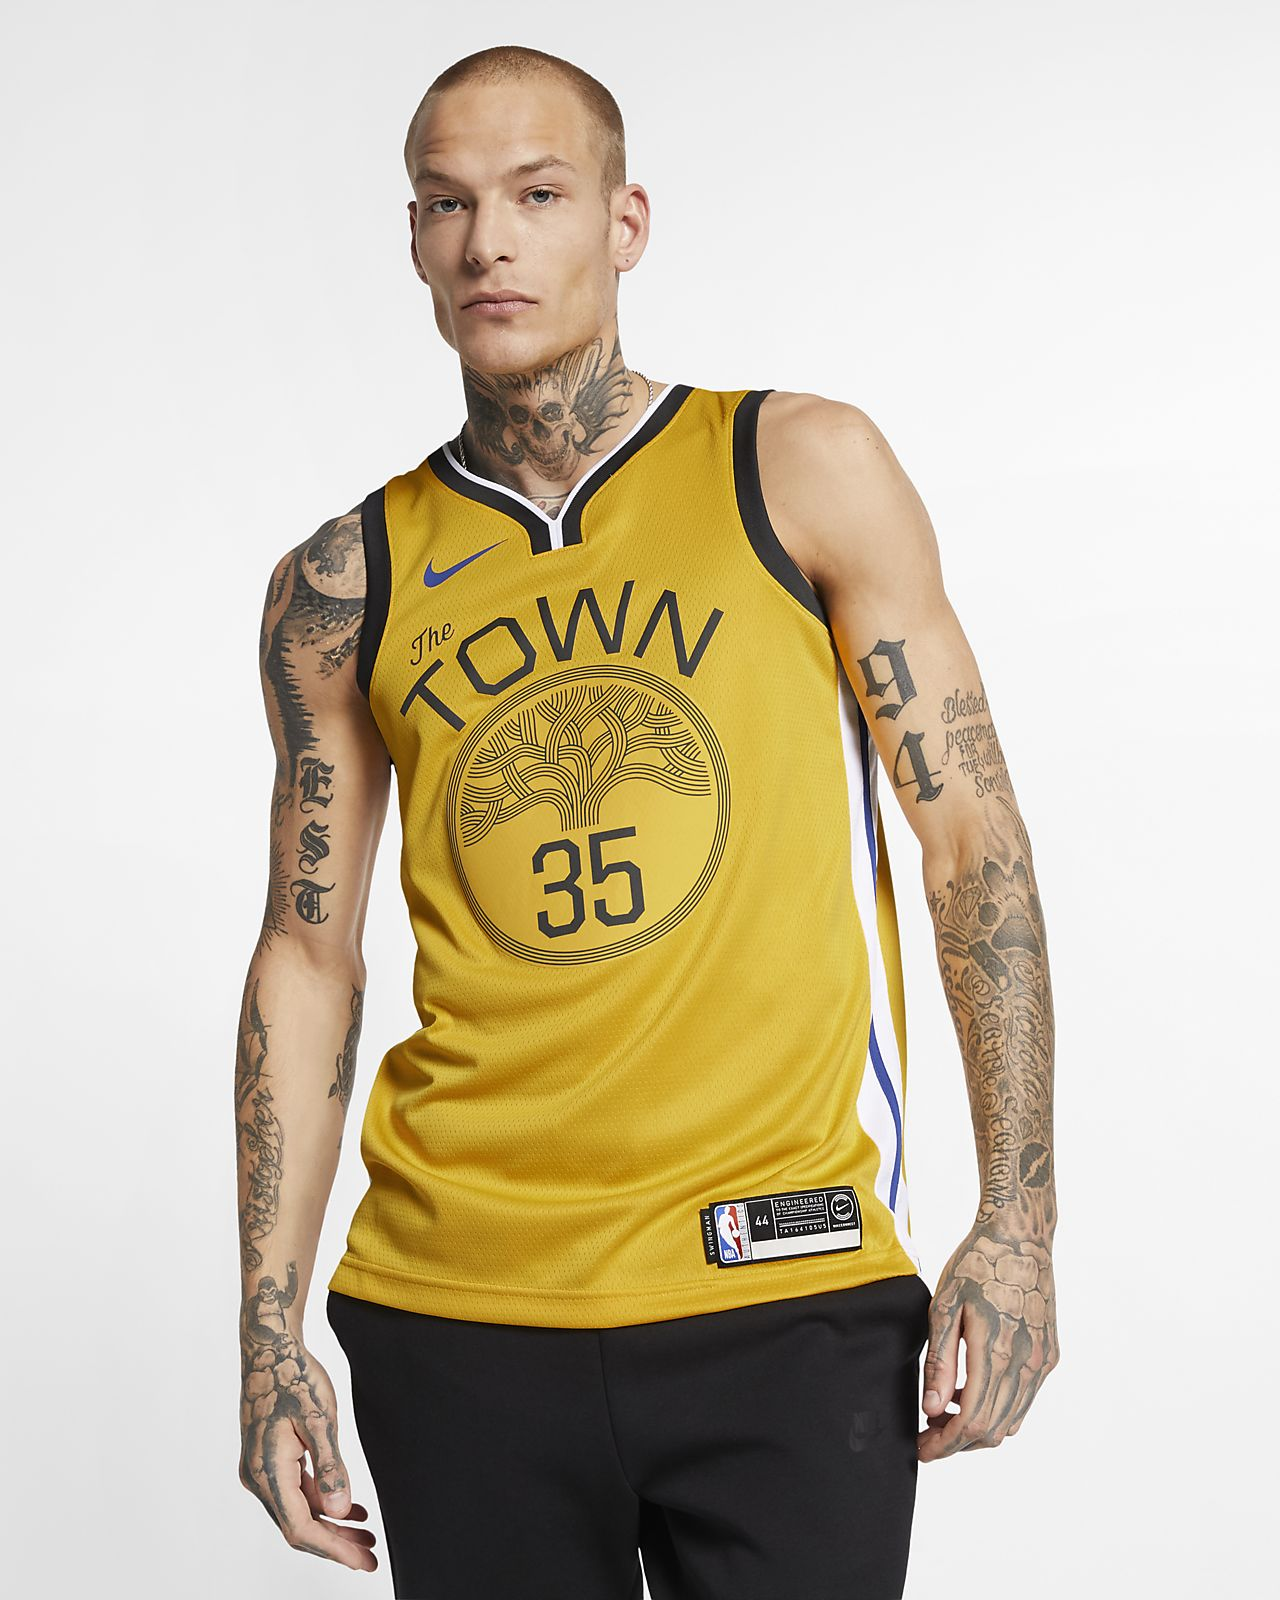 6dfd57554 Men s Nike NBA Connected Jersey. Kevin Durant Earned City Edition Swingman (Golden  State Warriors)